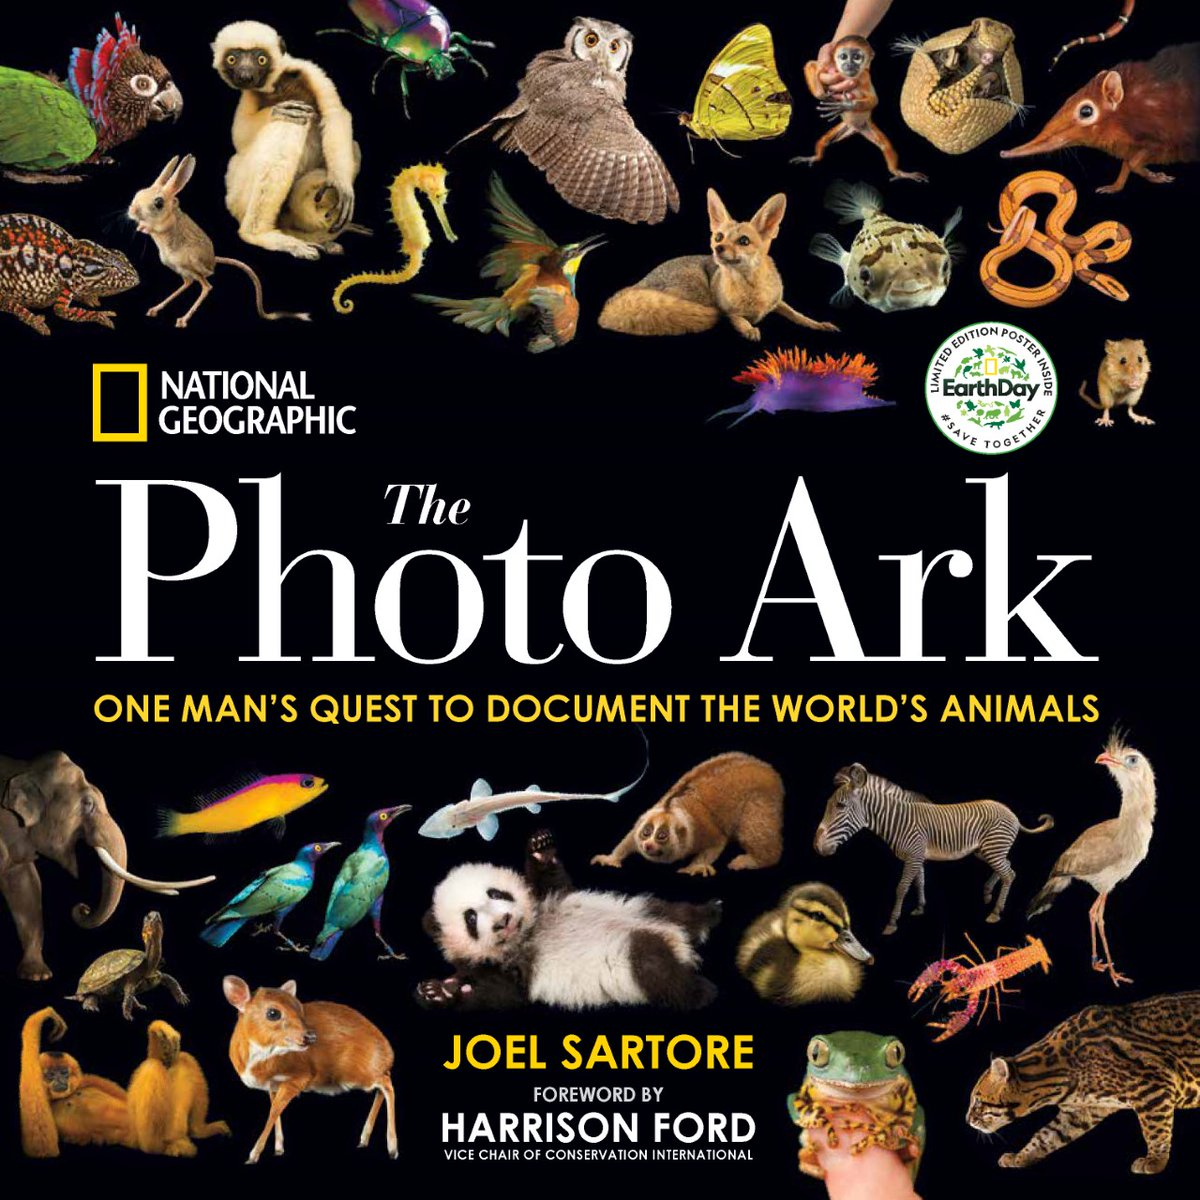 For your dear environmentalist, these moving photos bring you eye-to-eye with the world's endangered species and this special edition comes with an amazing free poster: https://t.co/aNiKQimXOr https://t.co/oLk7b8lSO1